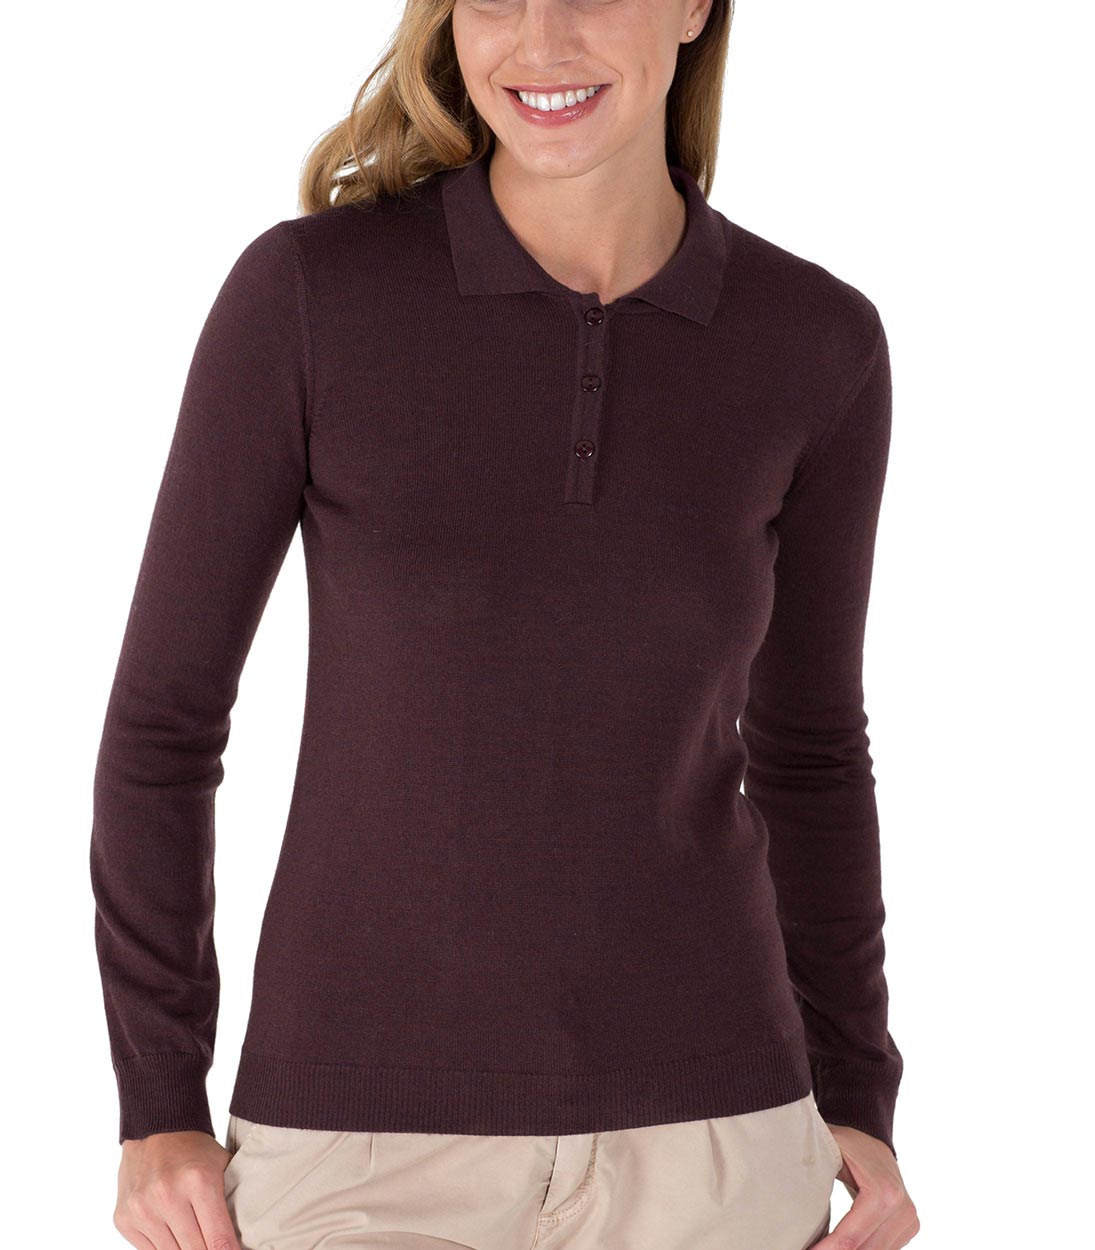 092c5ea90 WoolOvers Womens 100% Merino Long Sleeve Smart Casual Knitted Polo ...